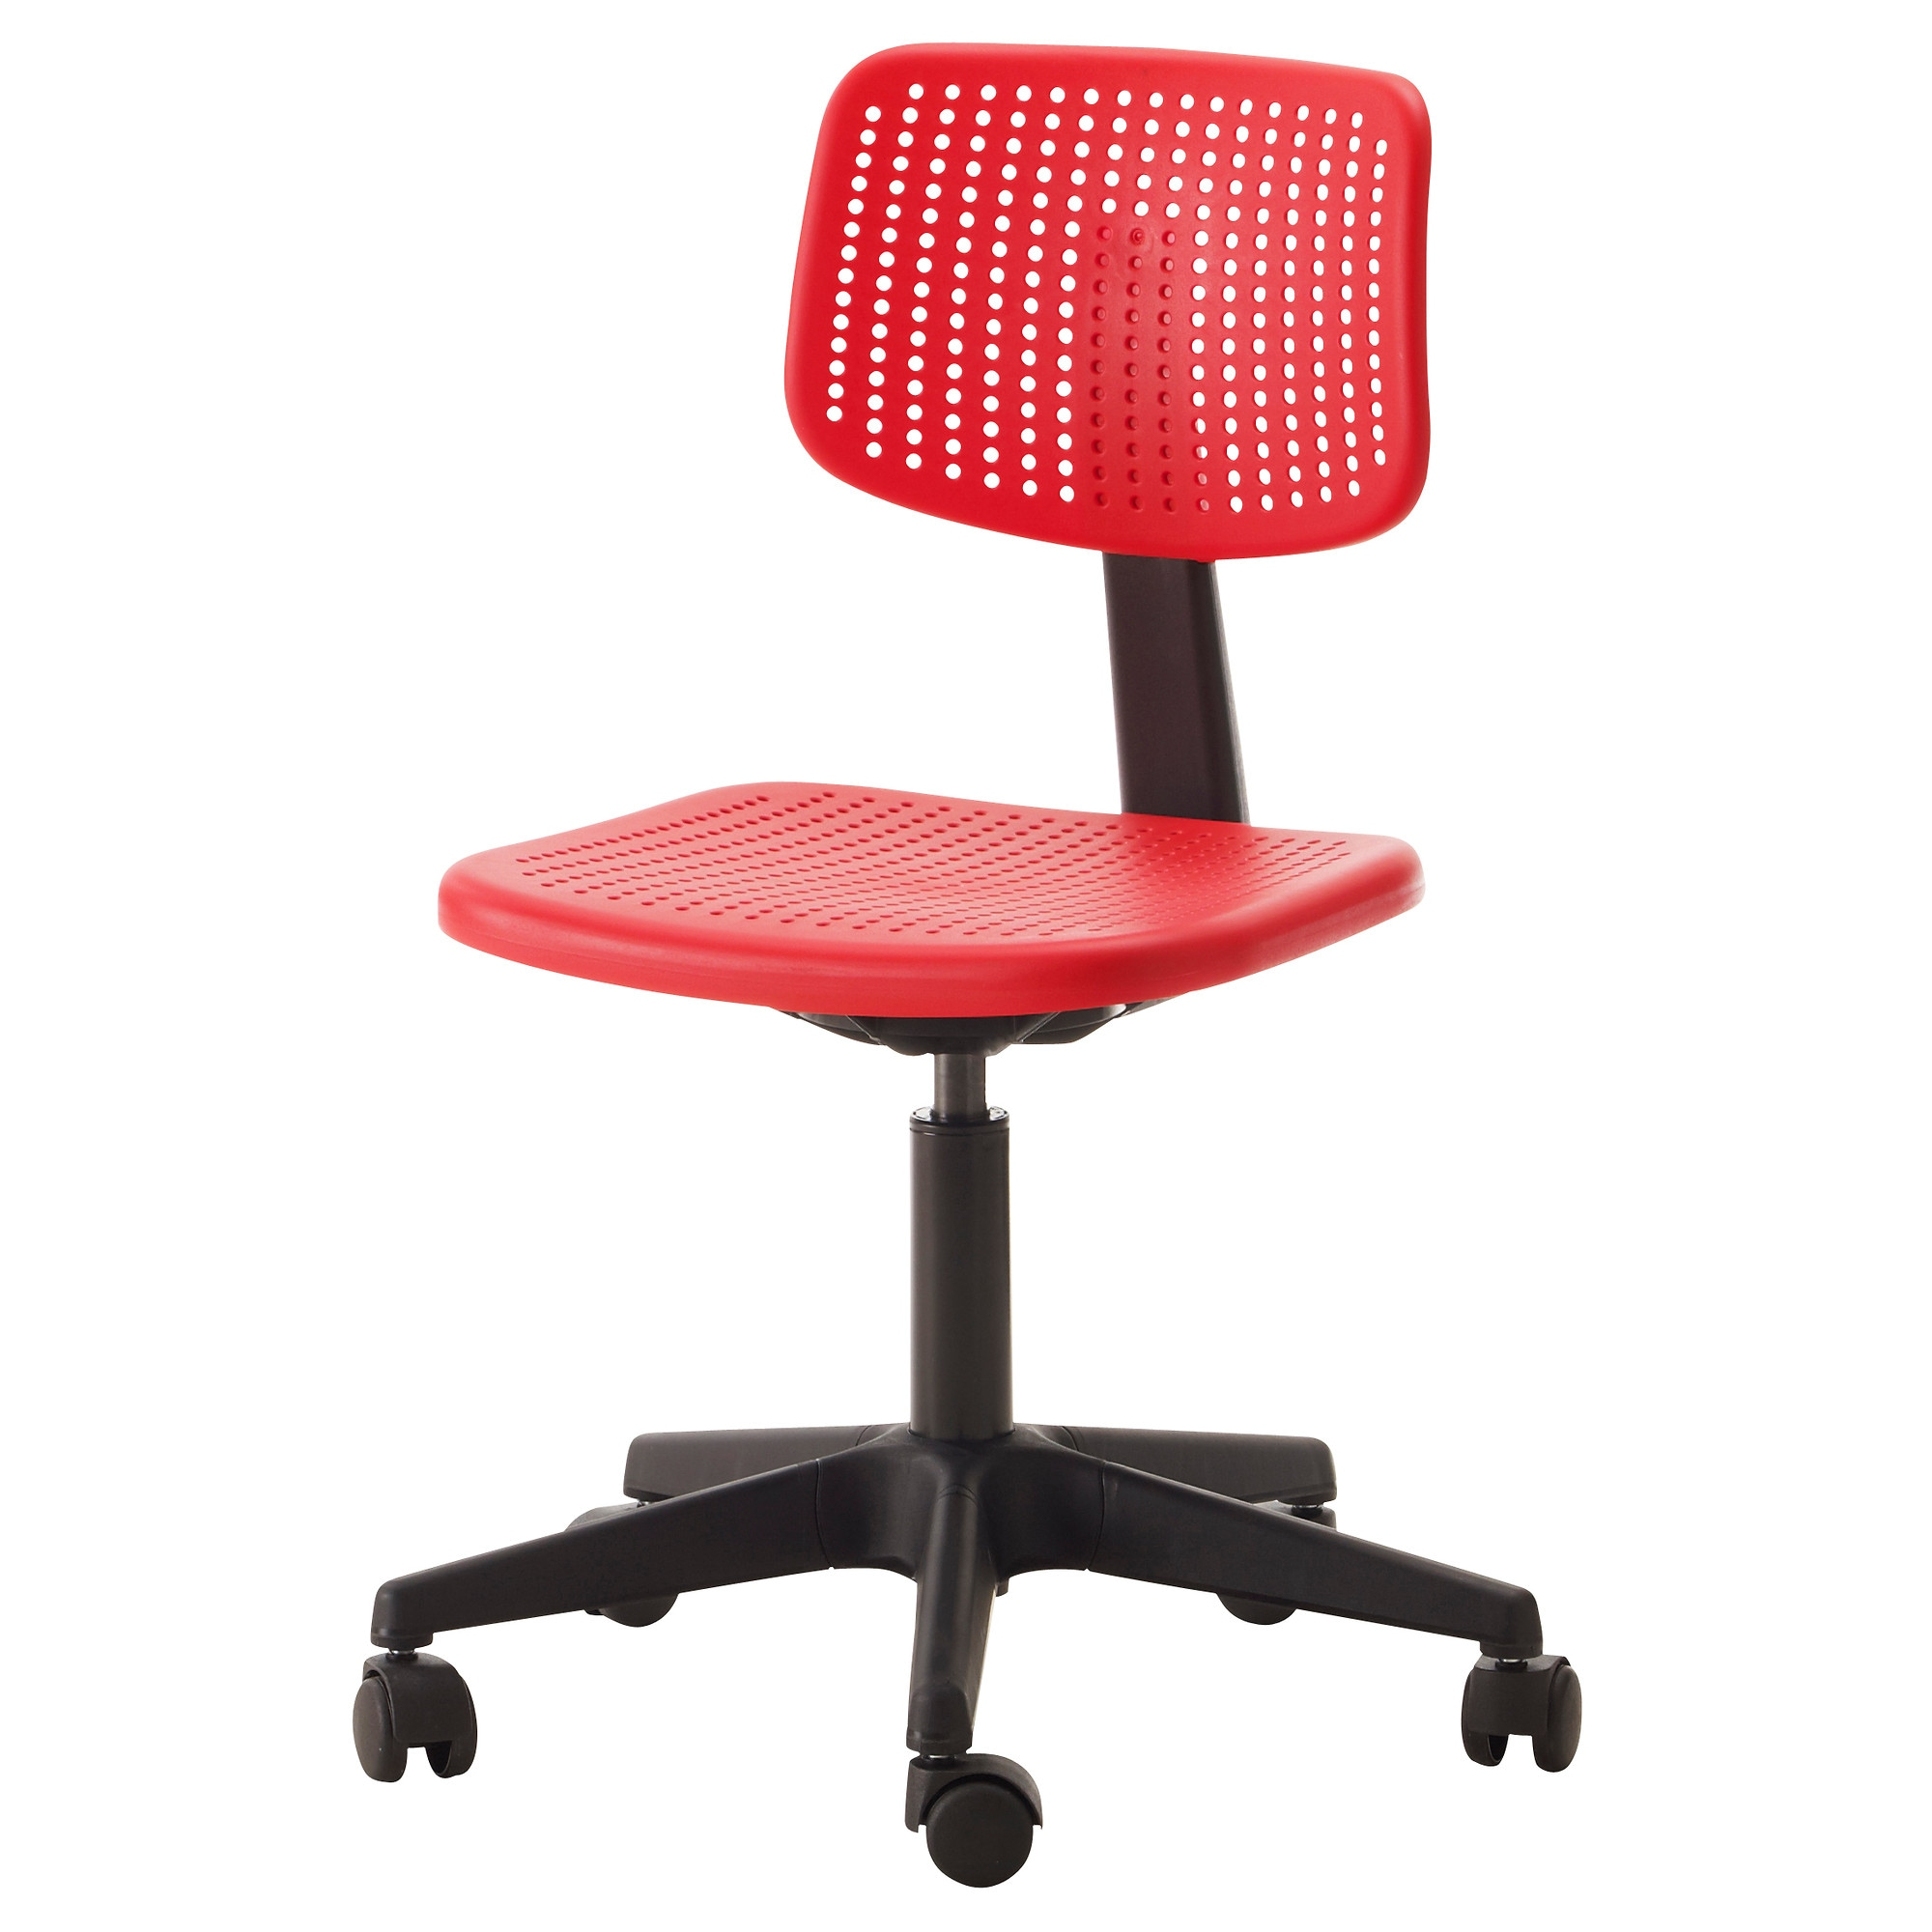 ALRIK Swivel chair red IKEA